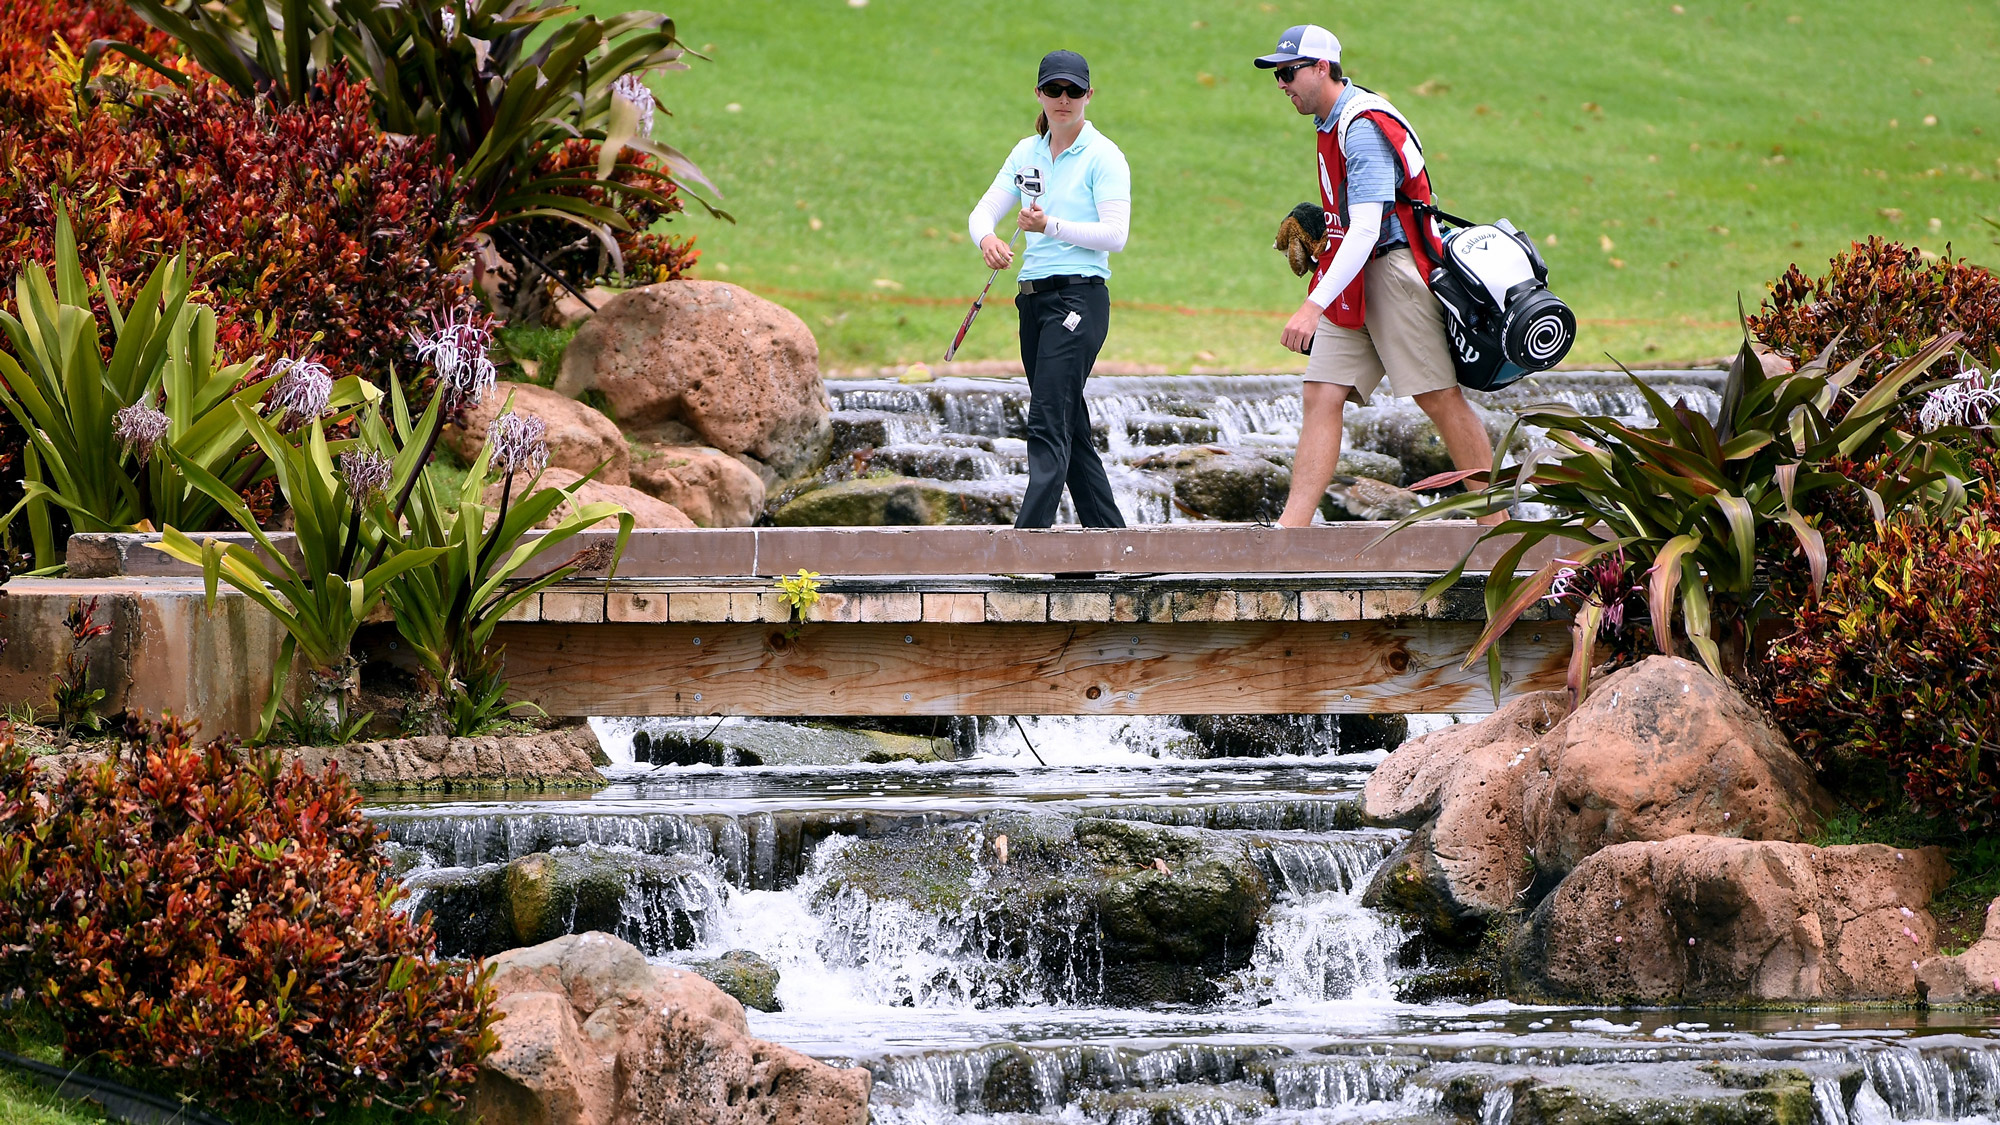 Lindy Duncan Crosses a Bridge at LOTTE Championship